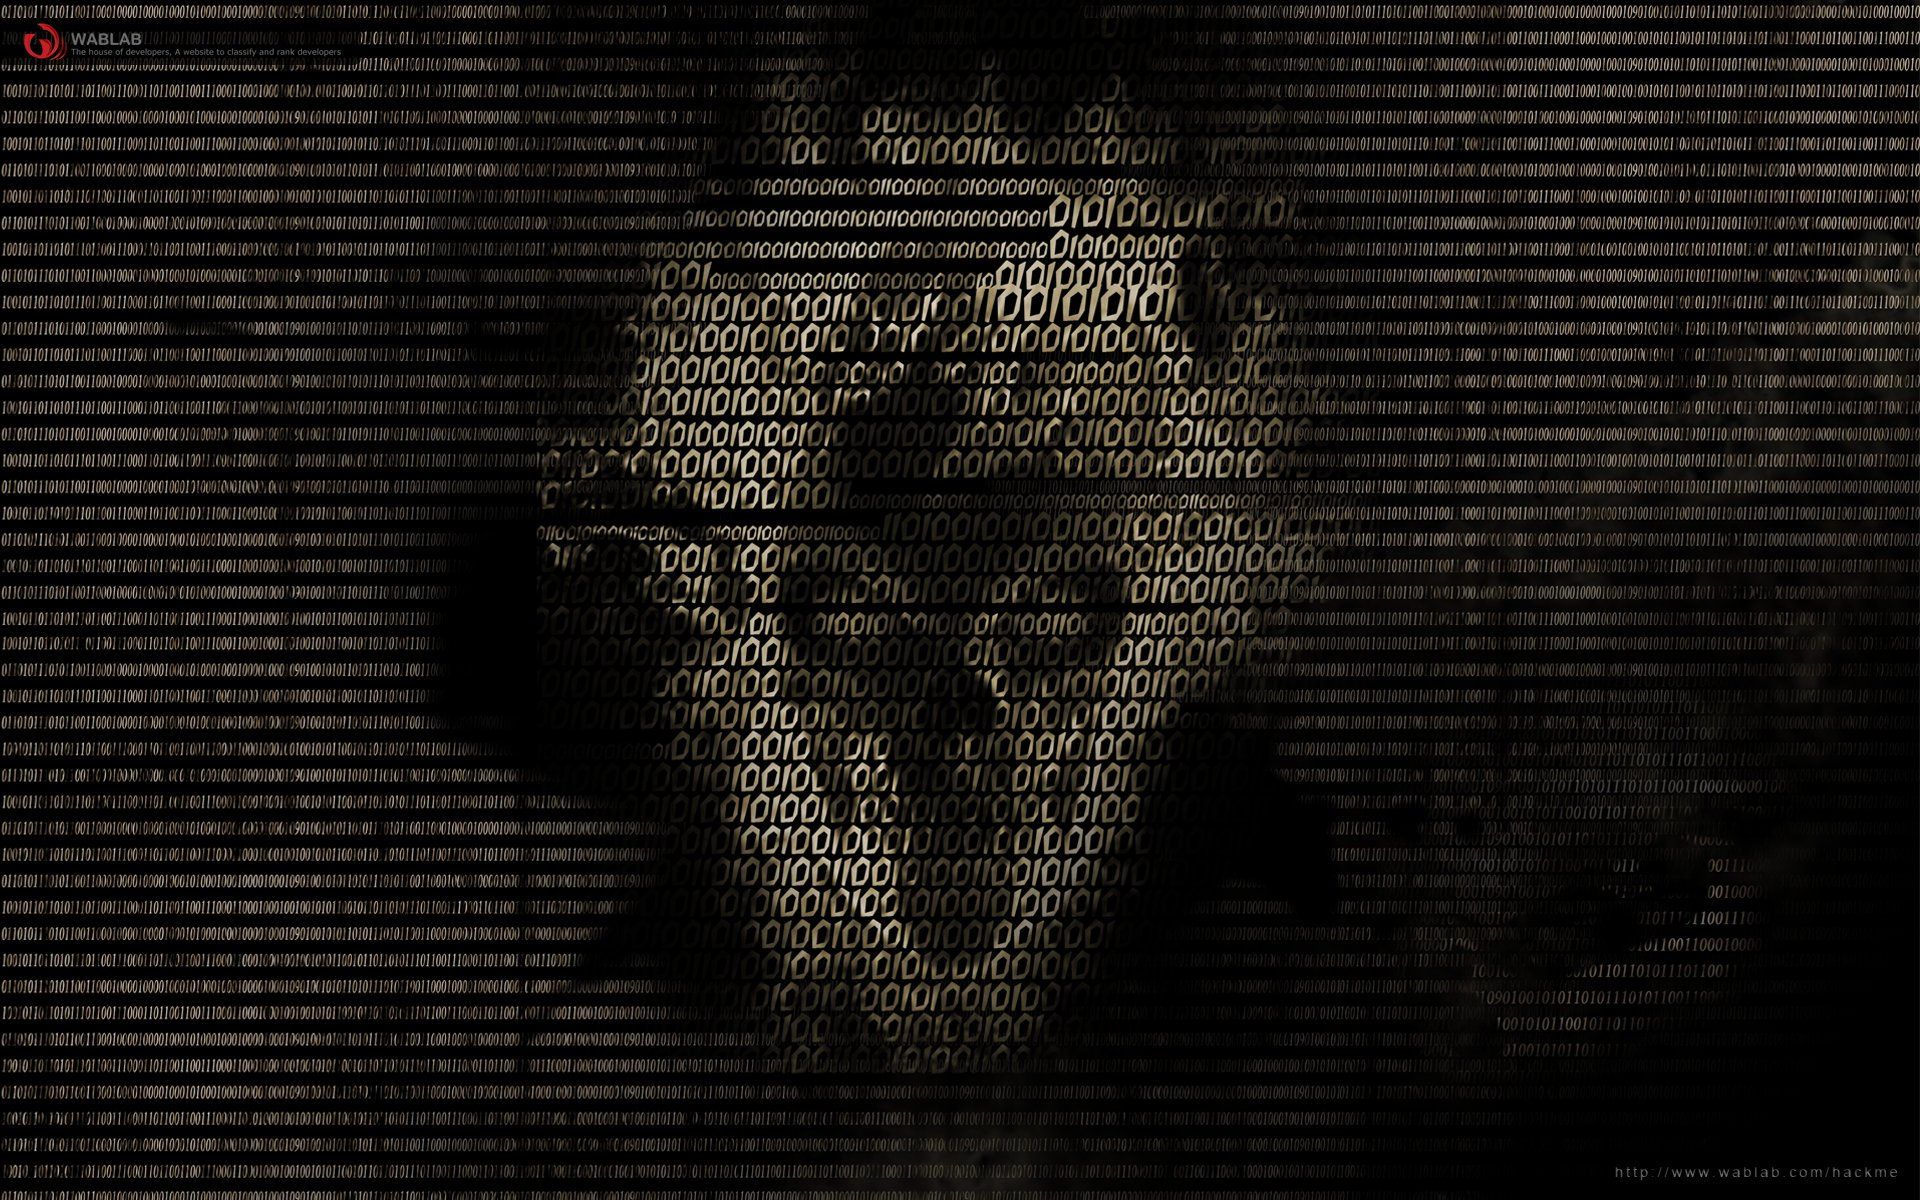 47 hacker hd wallpapers | background images - wallpaper abyss